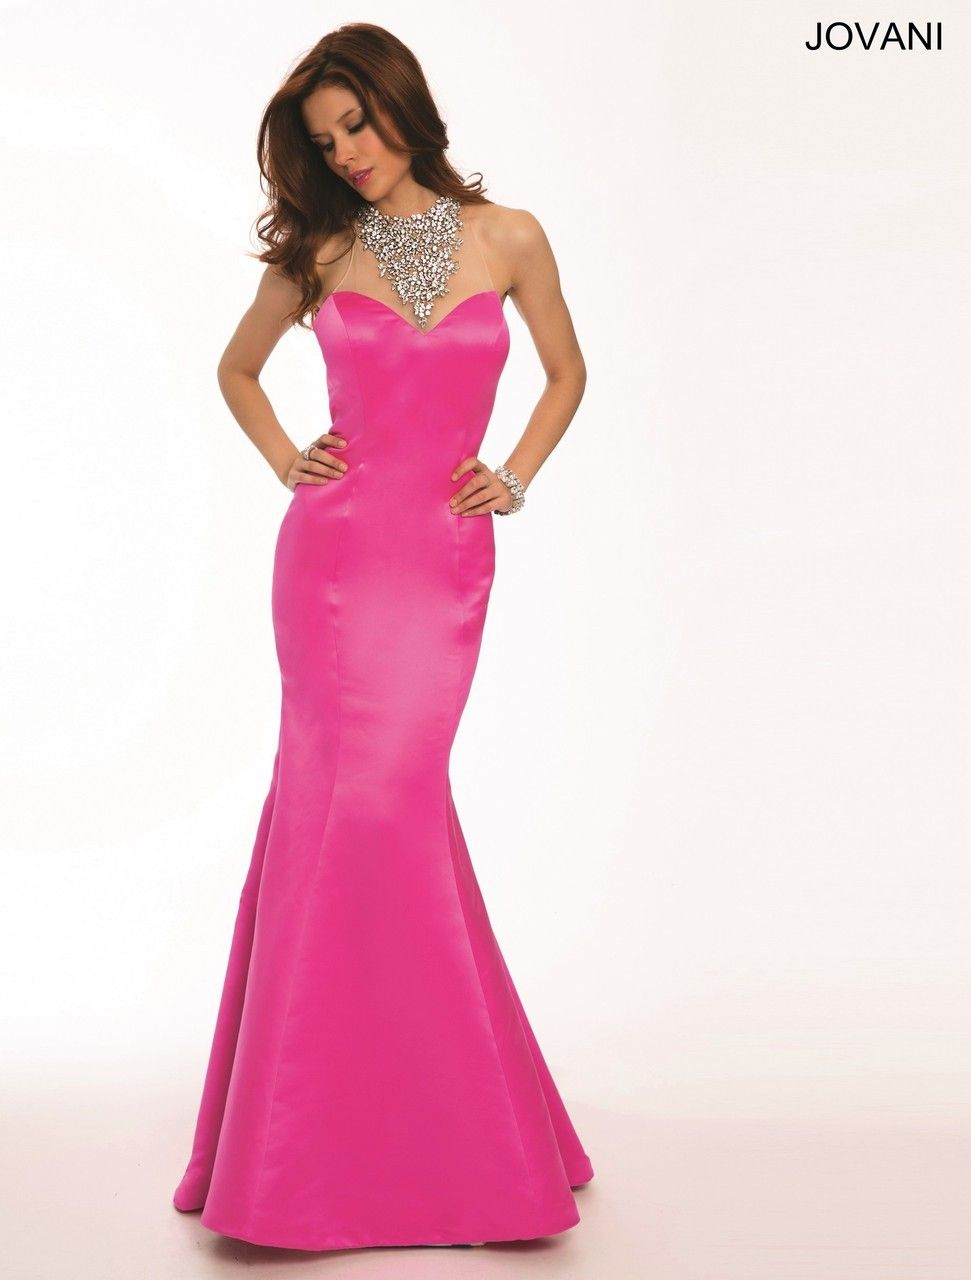 Jovani 20999 available now at Effie\'s Boutique! http://www.effies ...